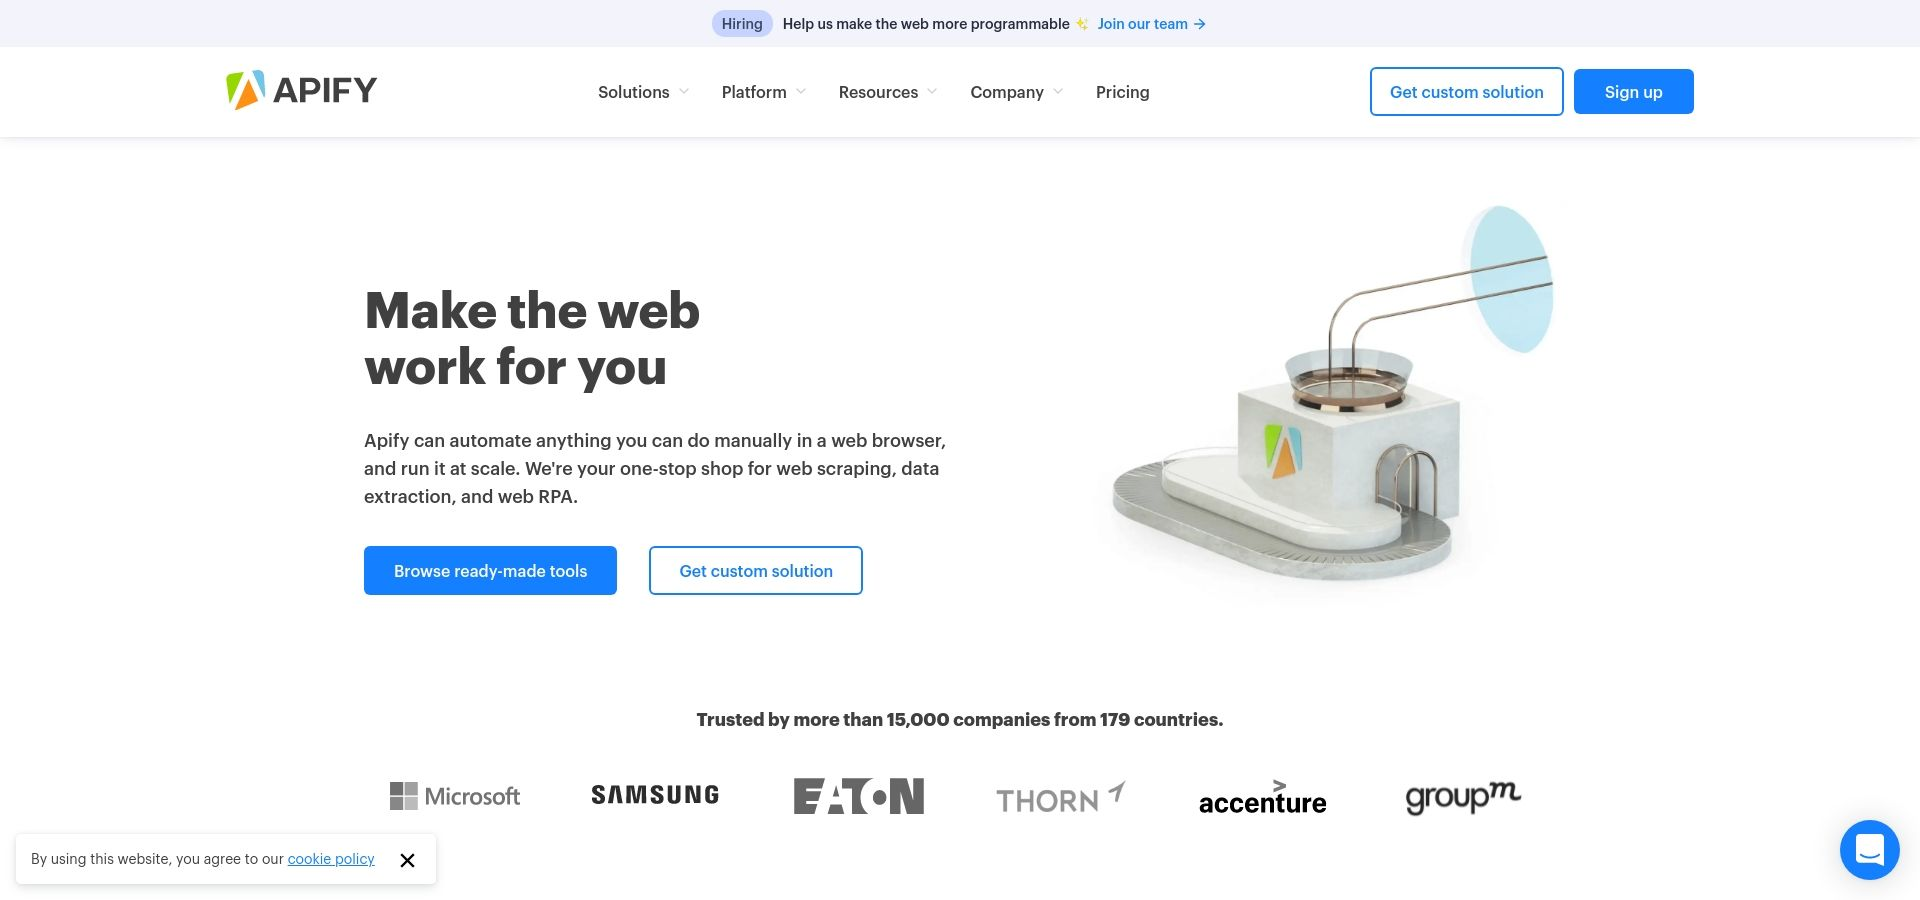 Web Scraping, Data Extraction and Automation · Apify